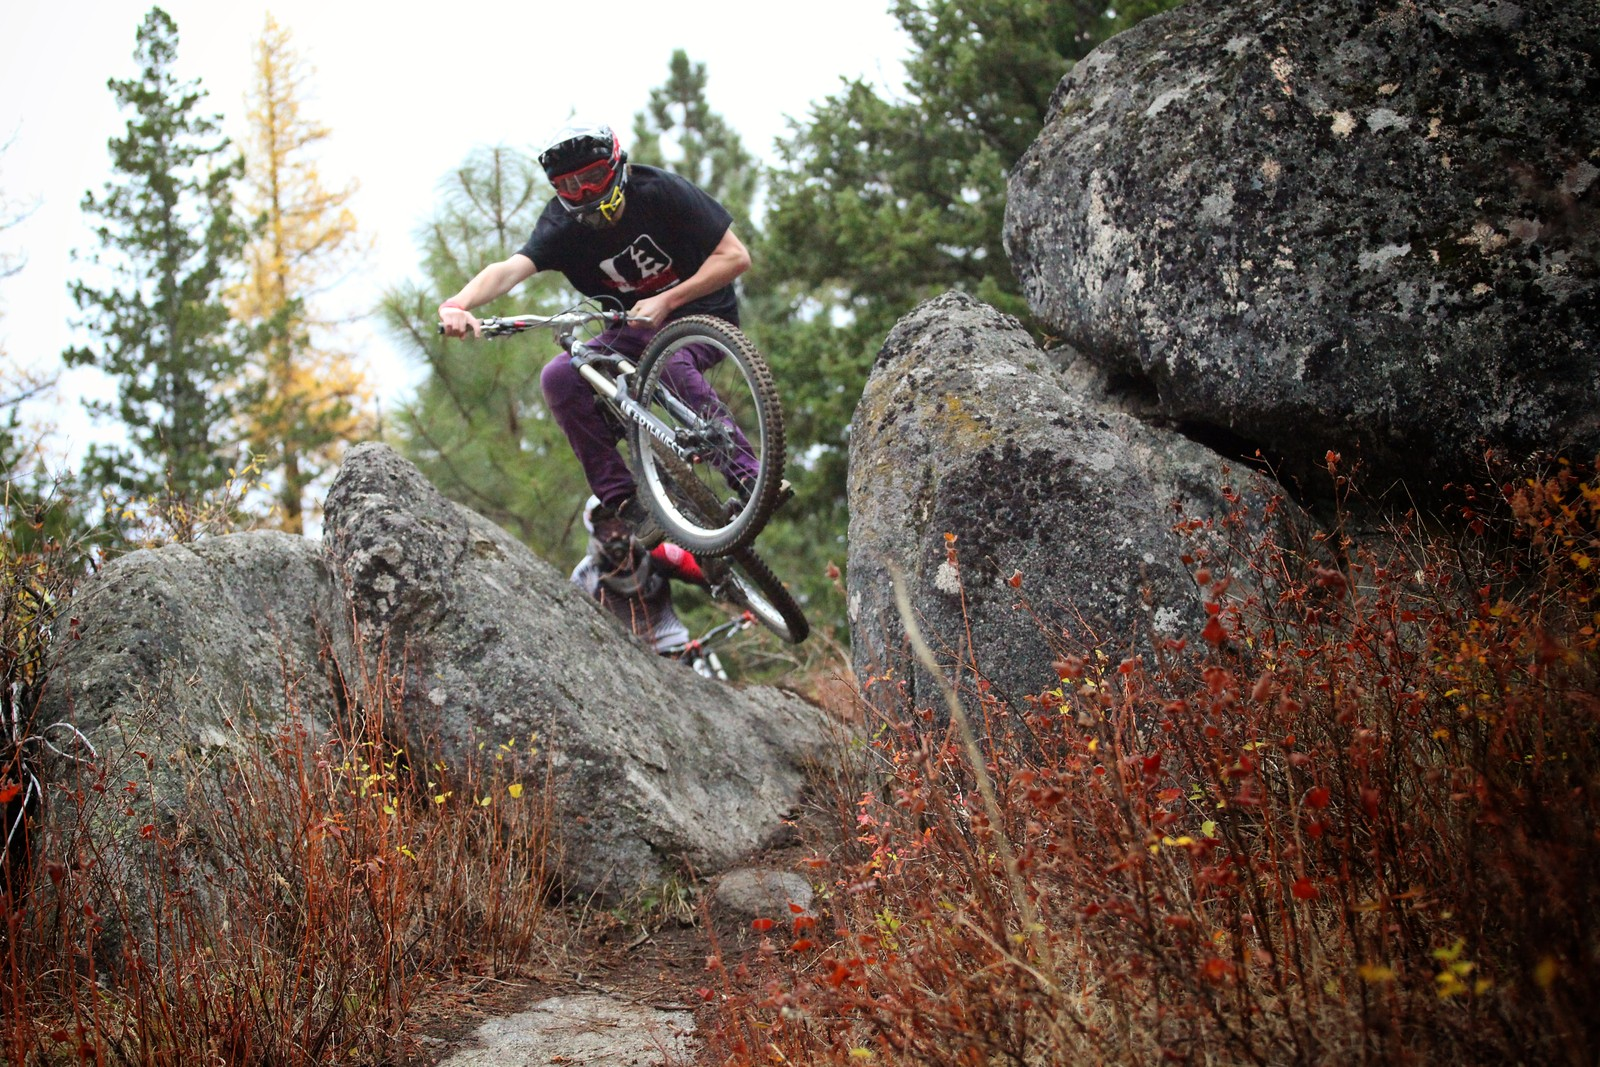 Fall in Idaho - Skye_Schillhammer - Mountain Biking Pictures - Vital MTB